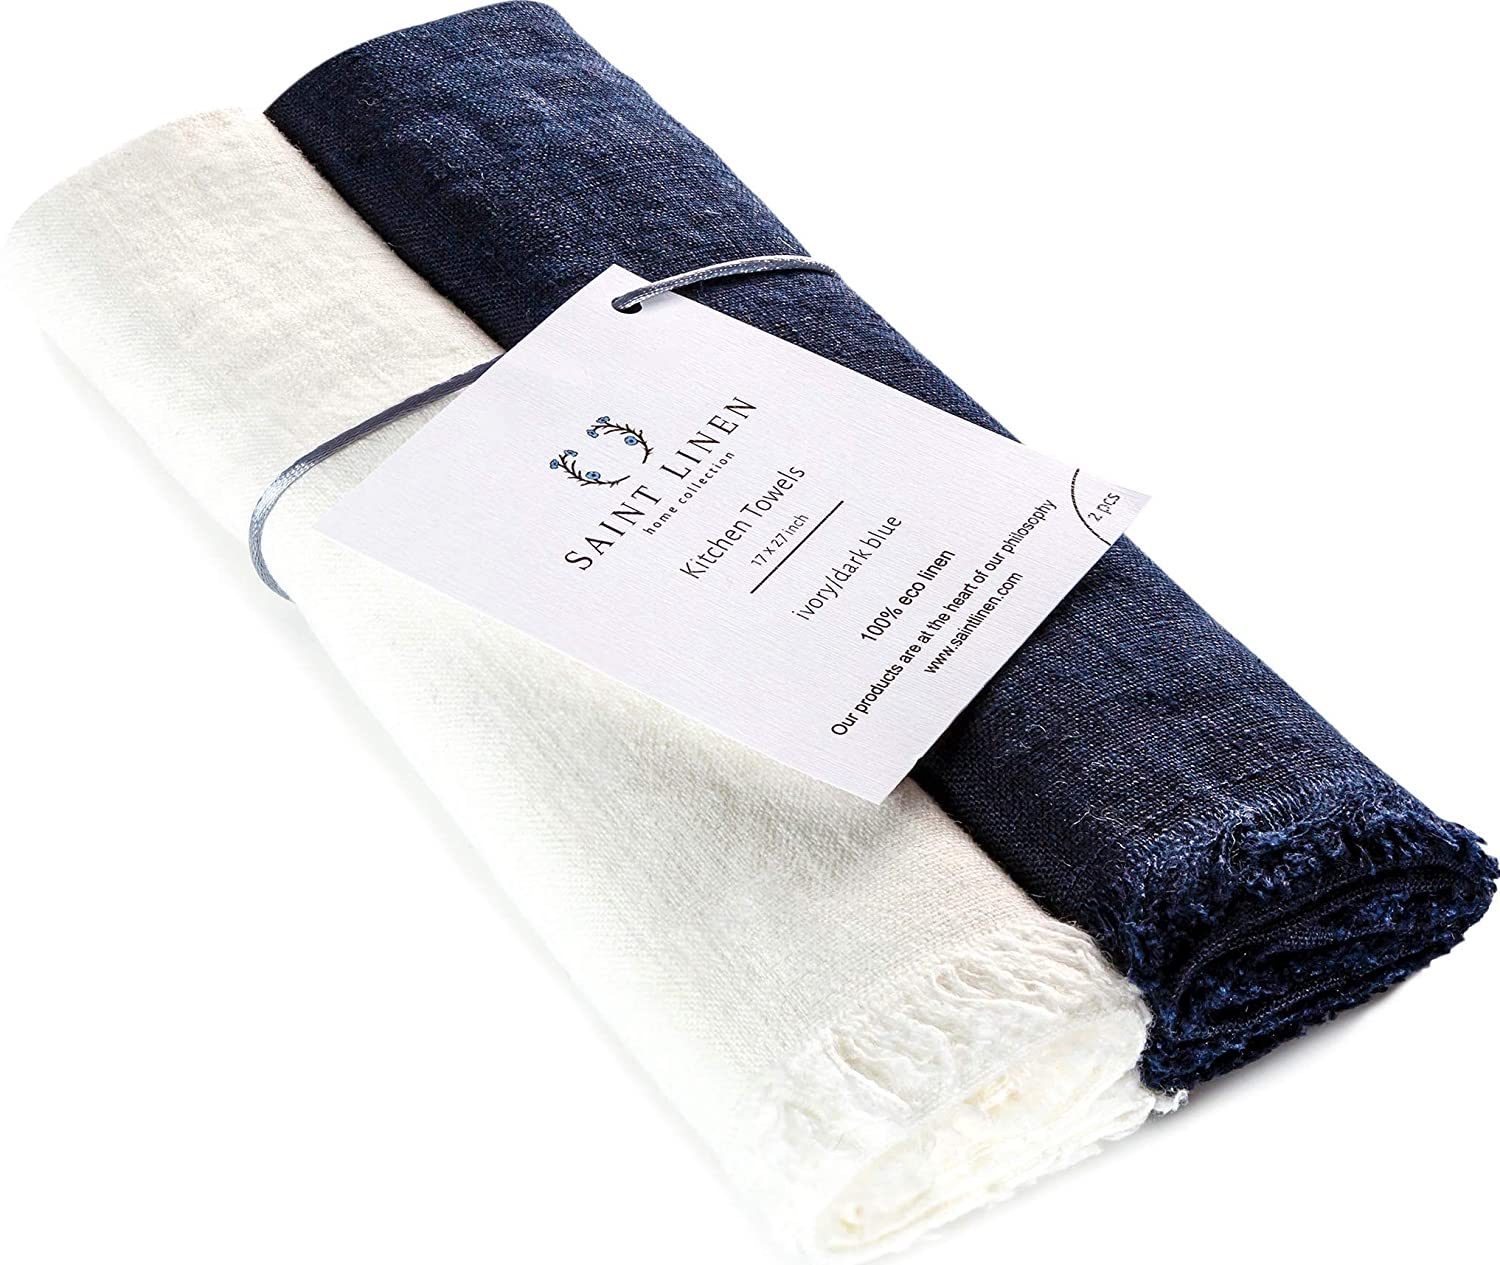 Set of 2 Linen Kitchen Towels Dish Cloth Stone Washed Towels in Ivory and Dark Blue Size 17